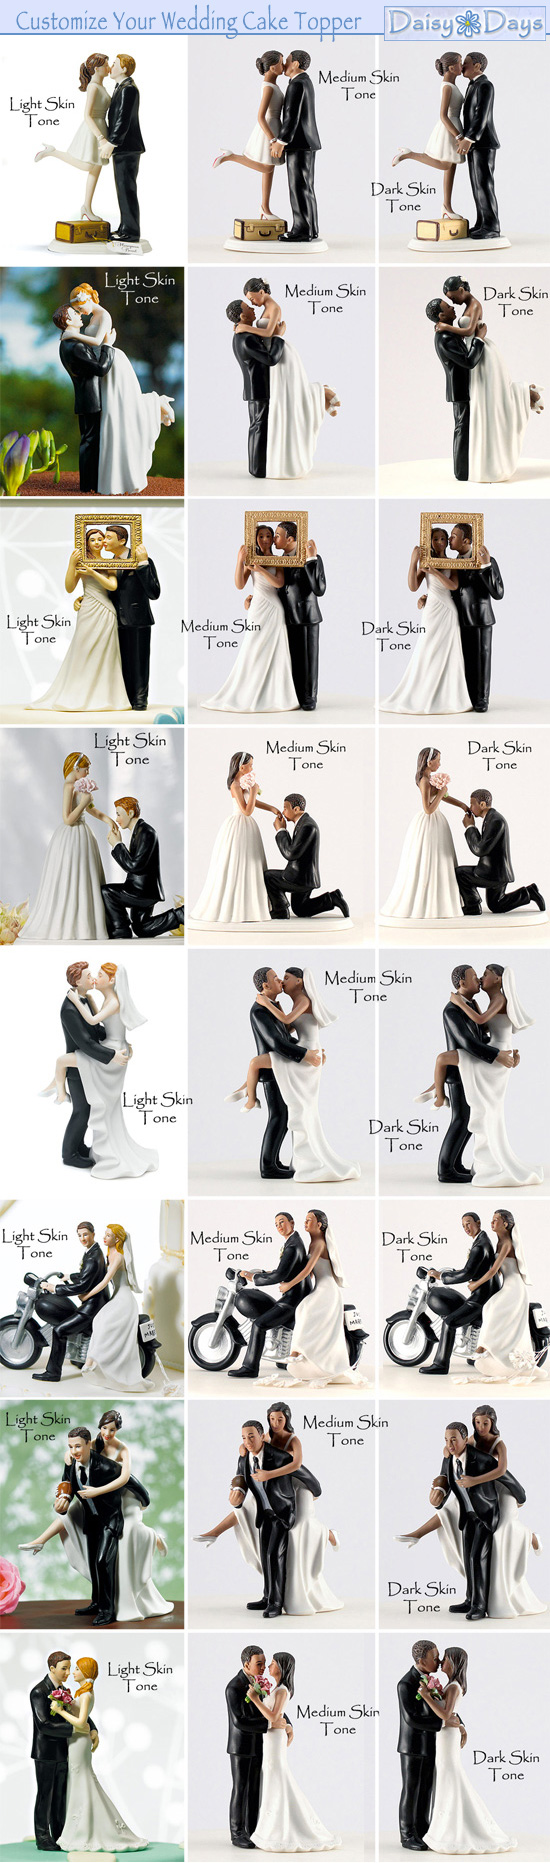 custom-cake-toppers-skin-hair-tone-0912-2.jpg